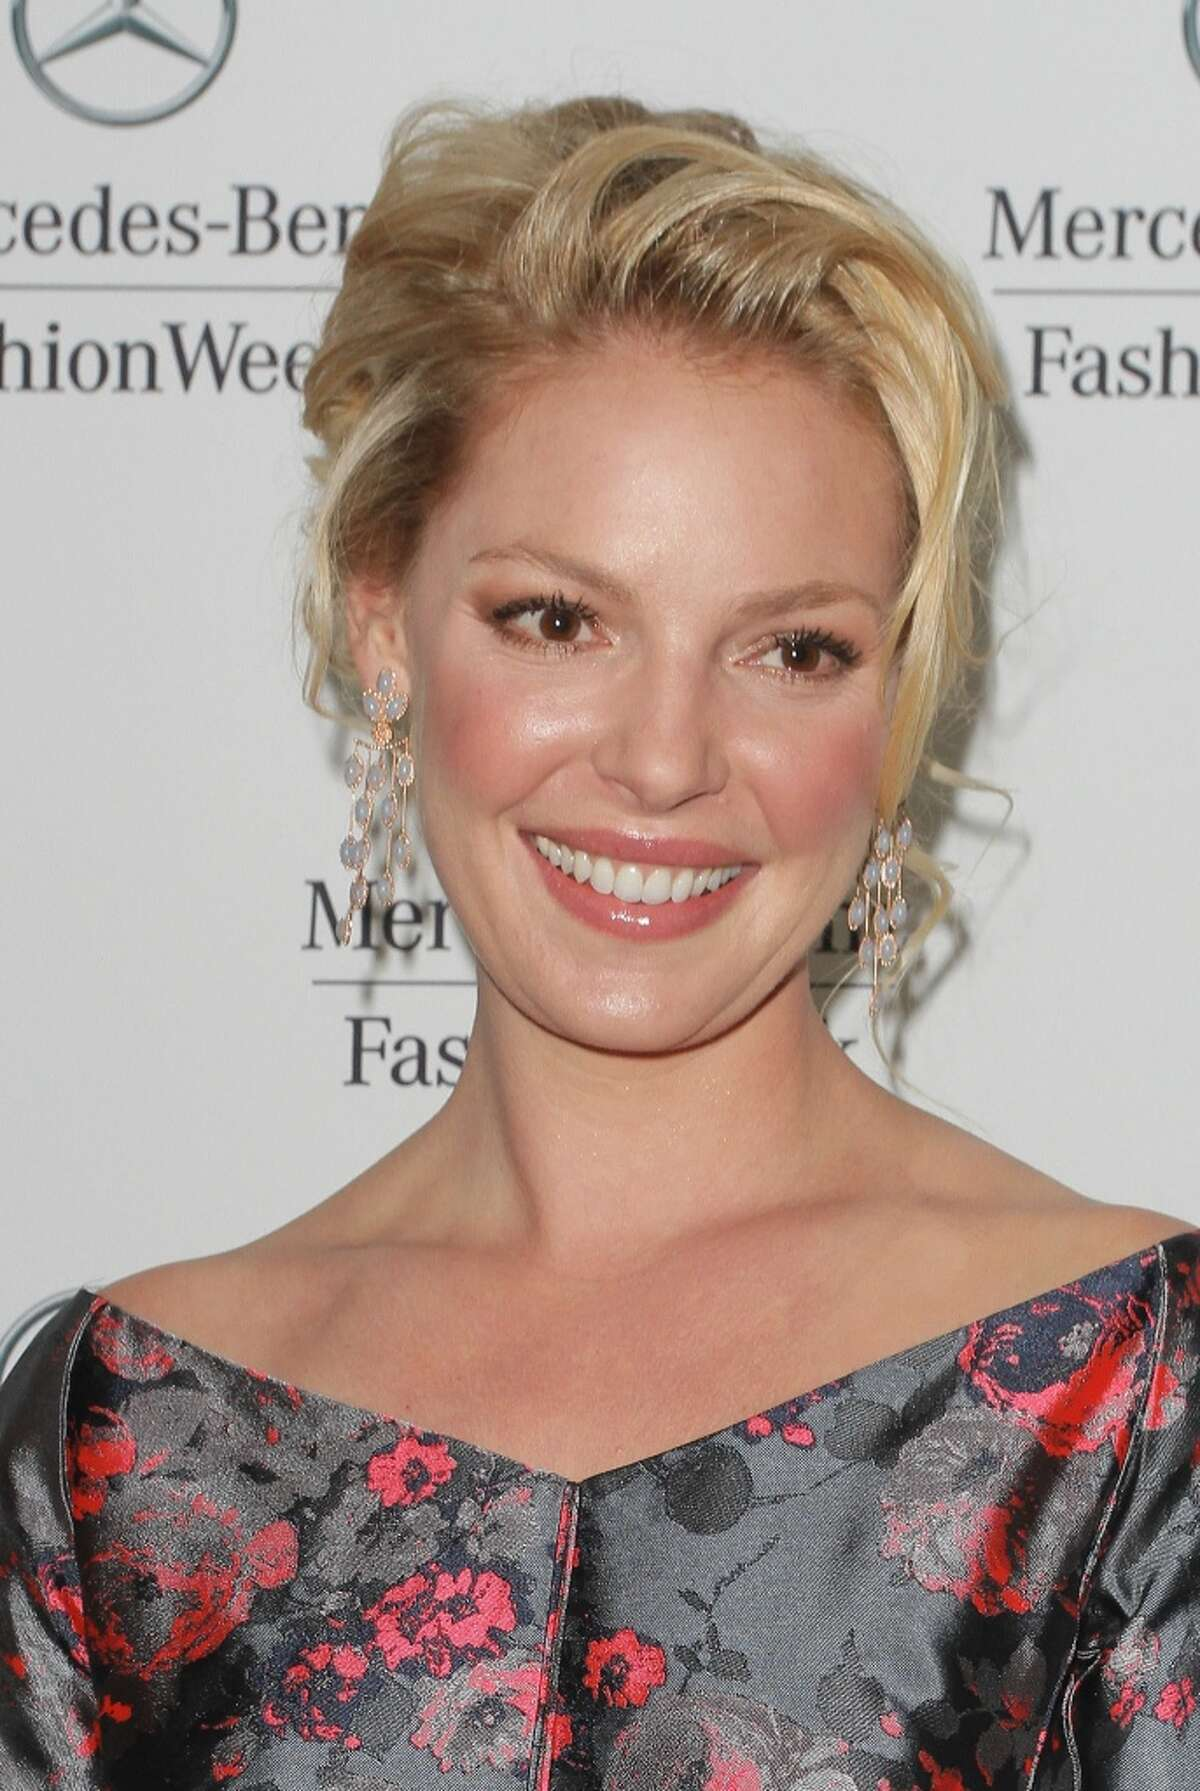 No. 2 most overpaid actor of 2013: Katherine Heigl